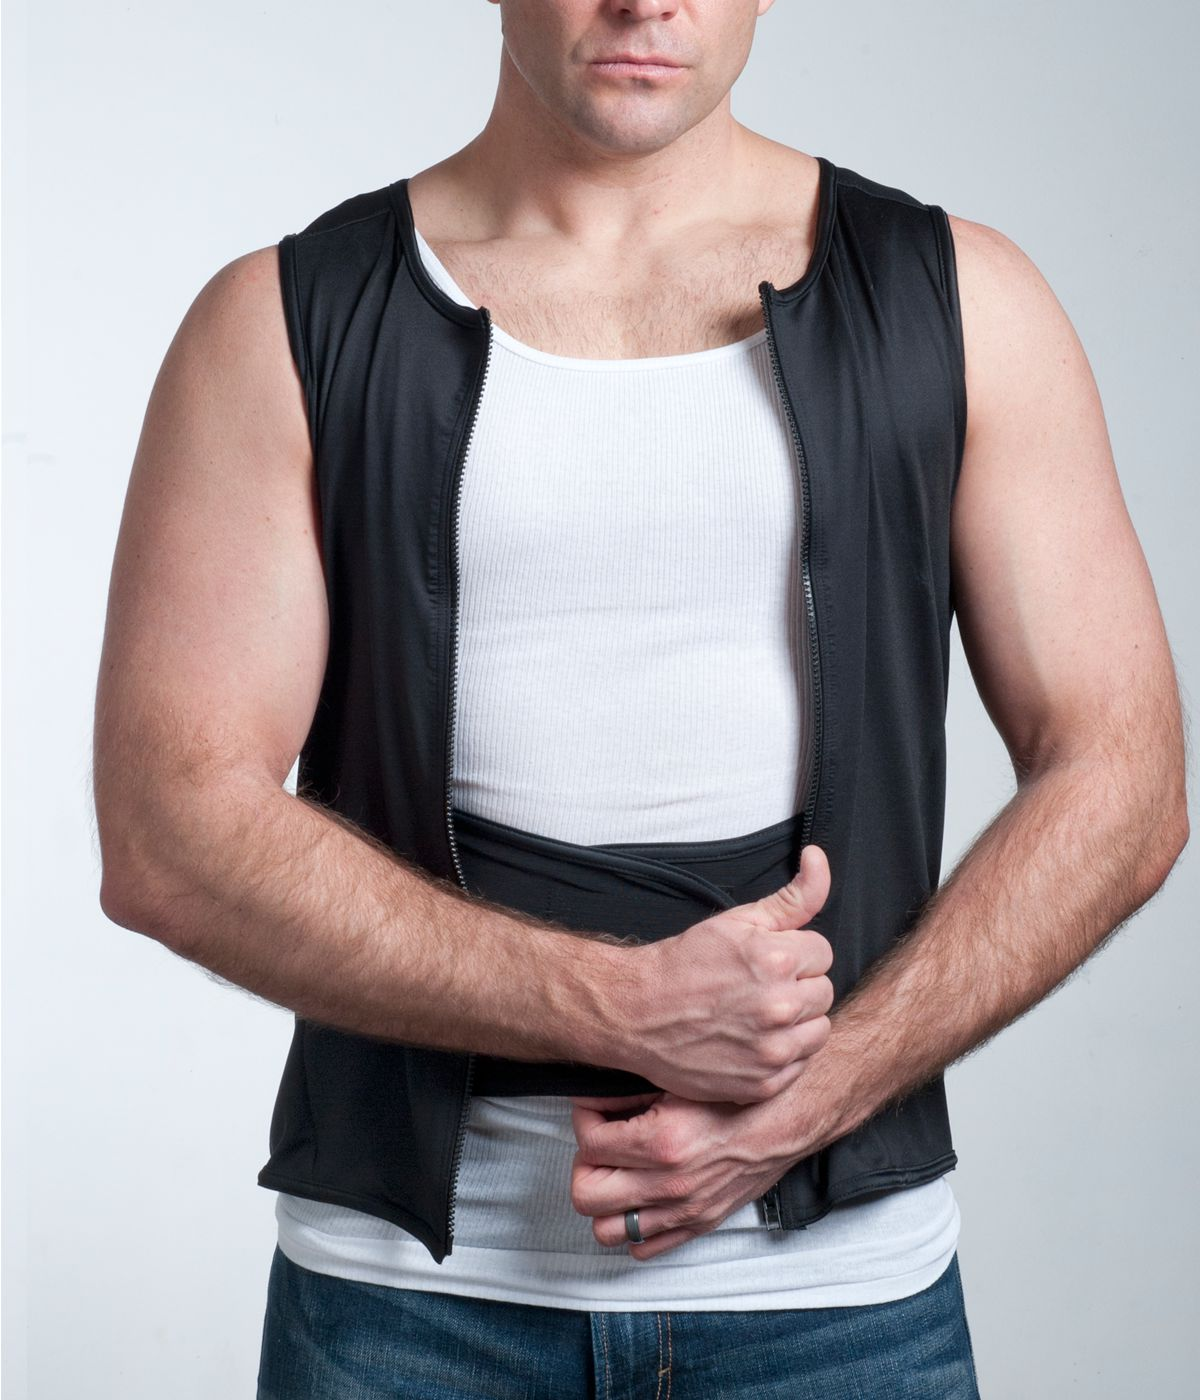 Spand-Ice | Hot + Cold Therapy | Revive Tank - Mens How To